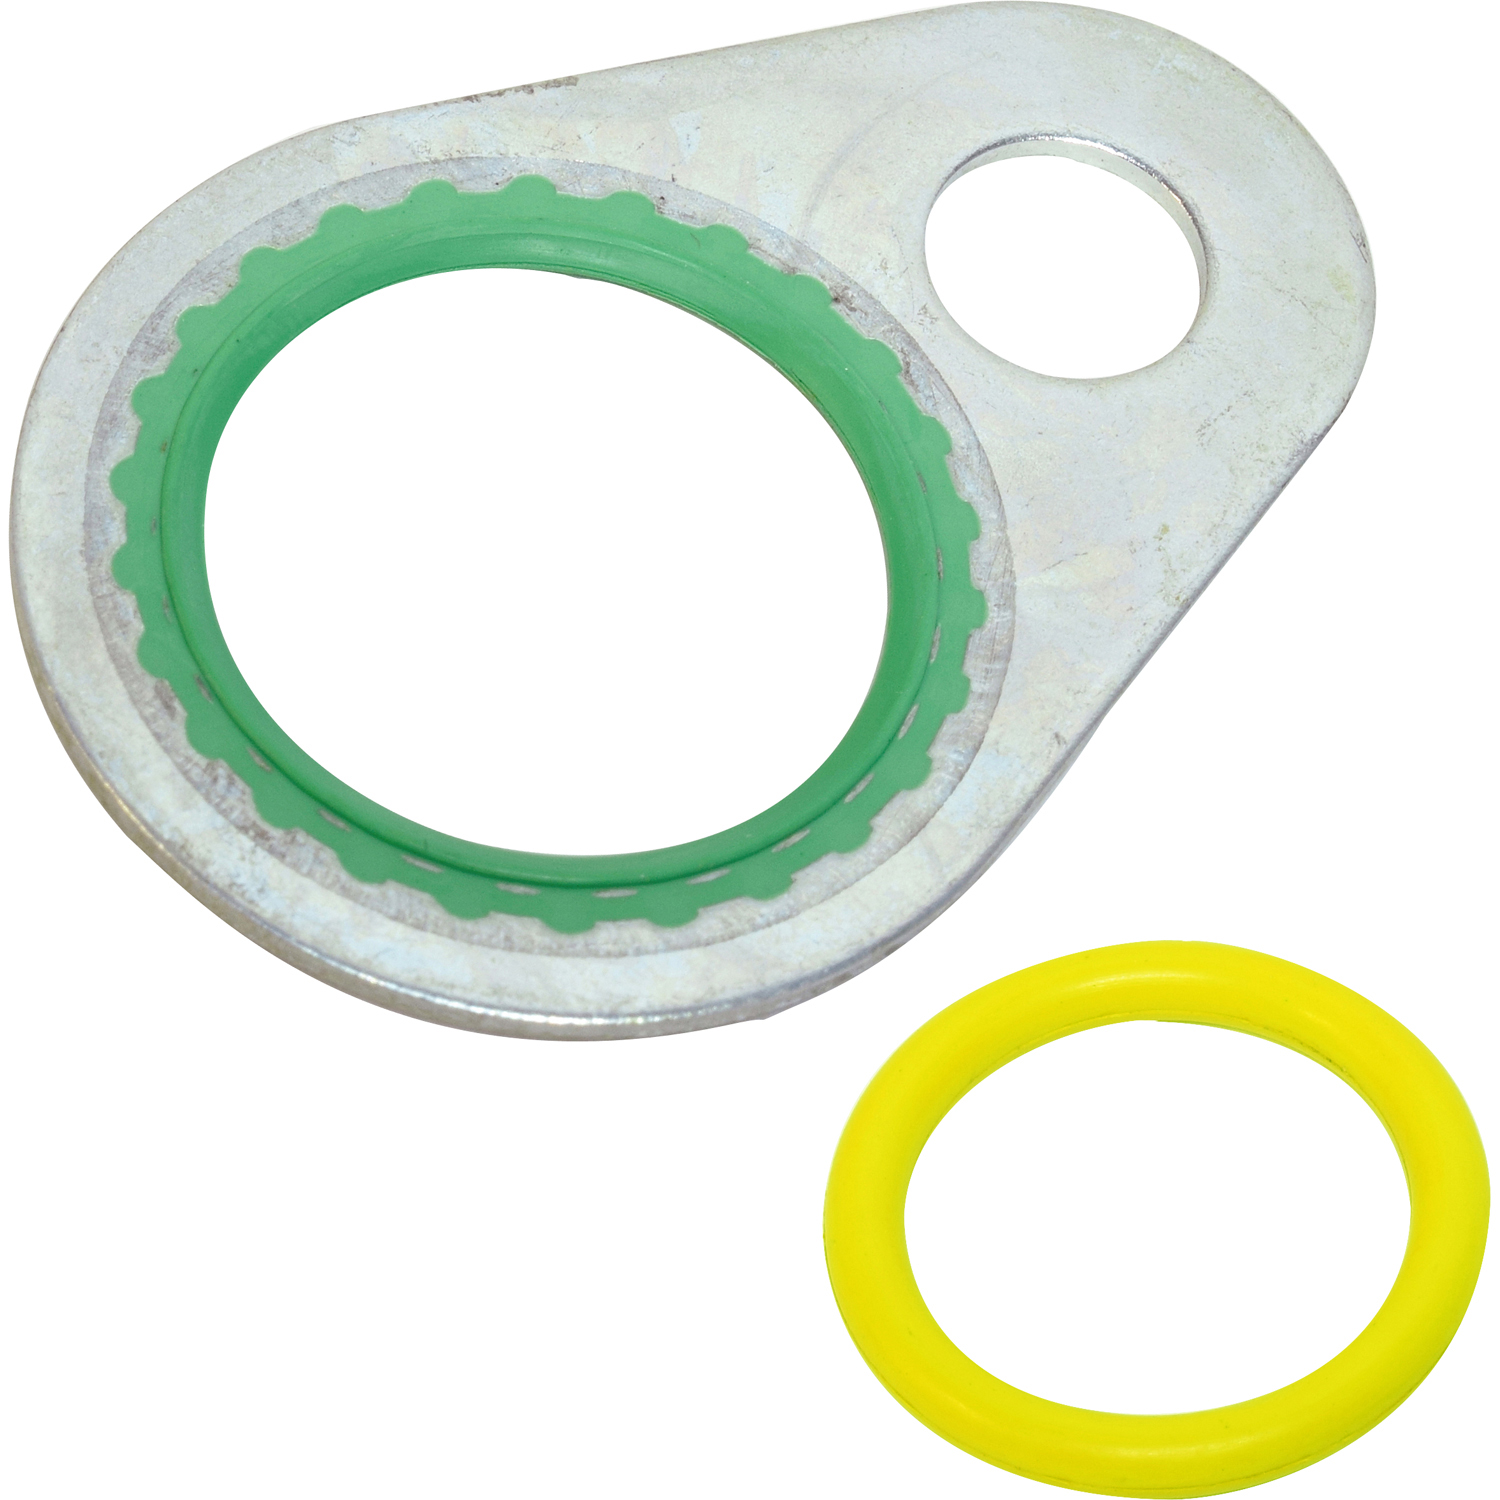 Chrysler Metal Gasket Teardrop & O-Ring Suction Kit